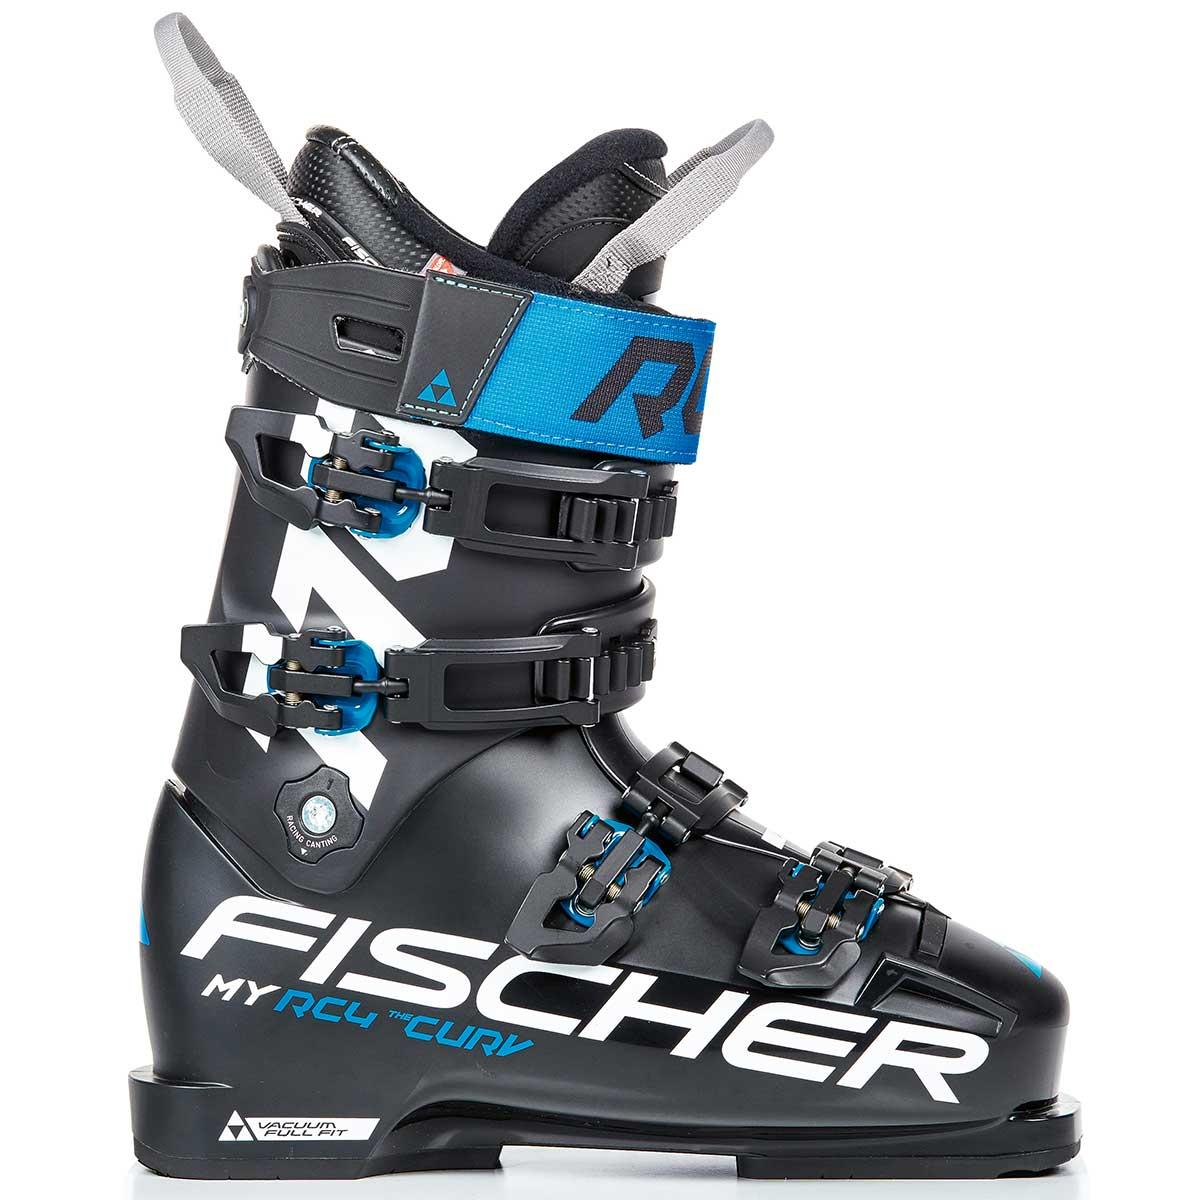 Fischer Women's My Curv 110 Vacuum Full Fit boot in black and blue